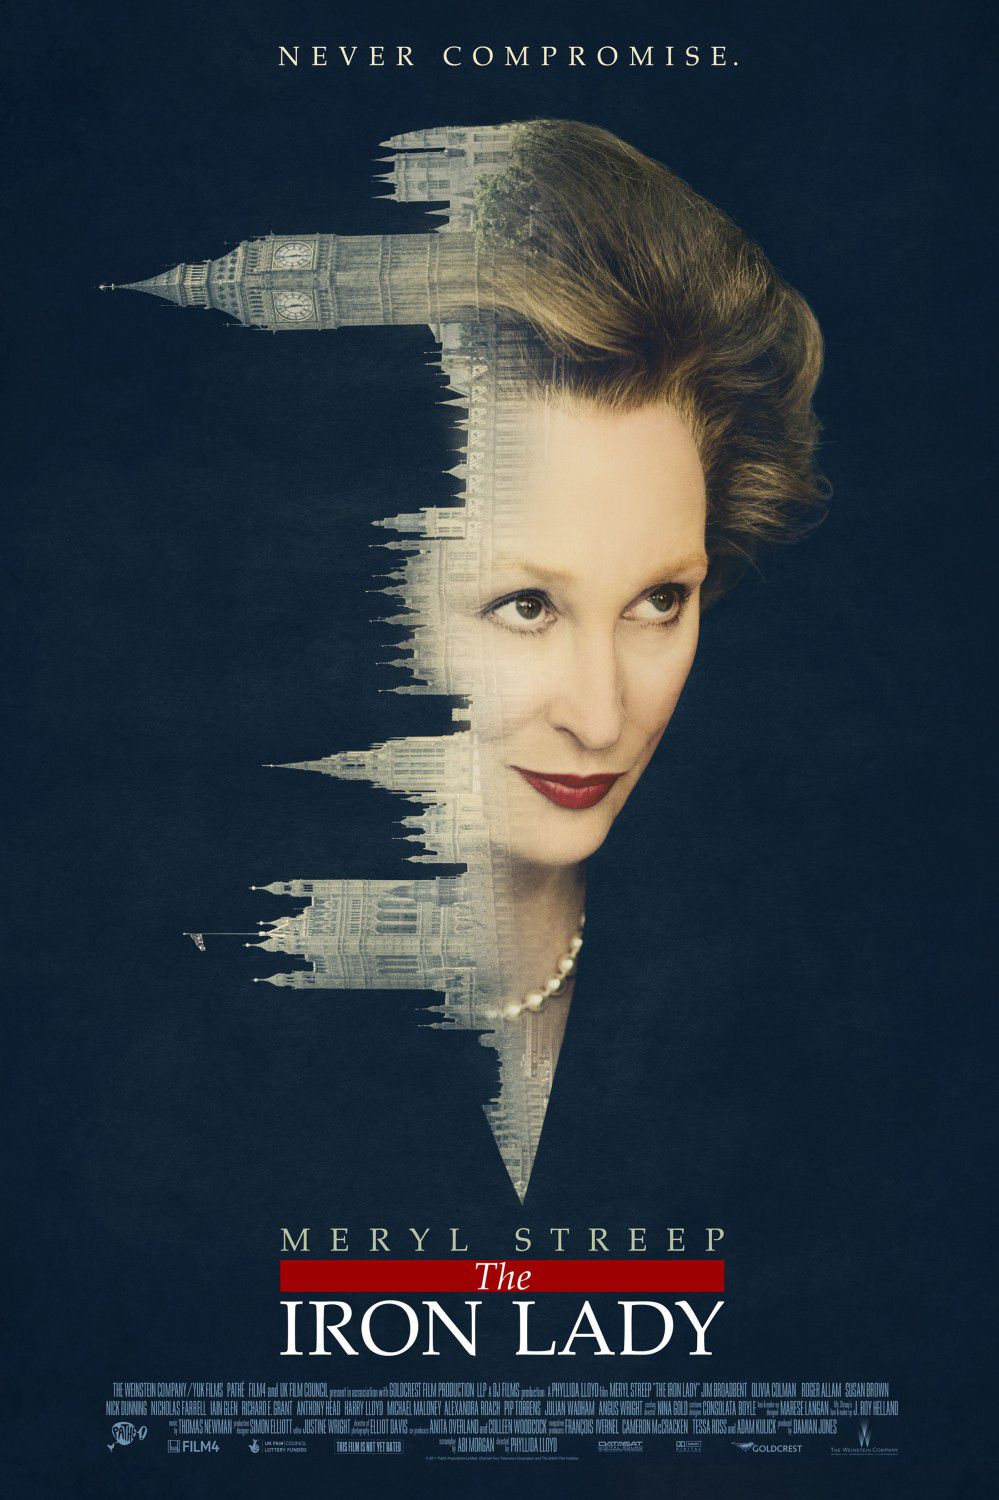 Iron Lady - poster - Meryl Streep - Never Compromise